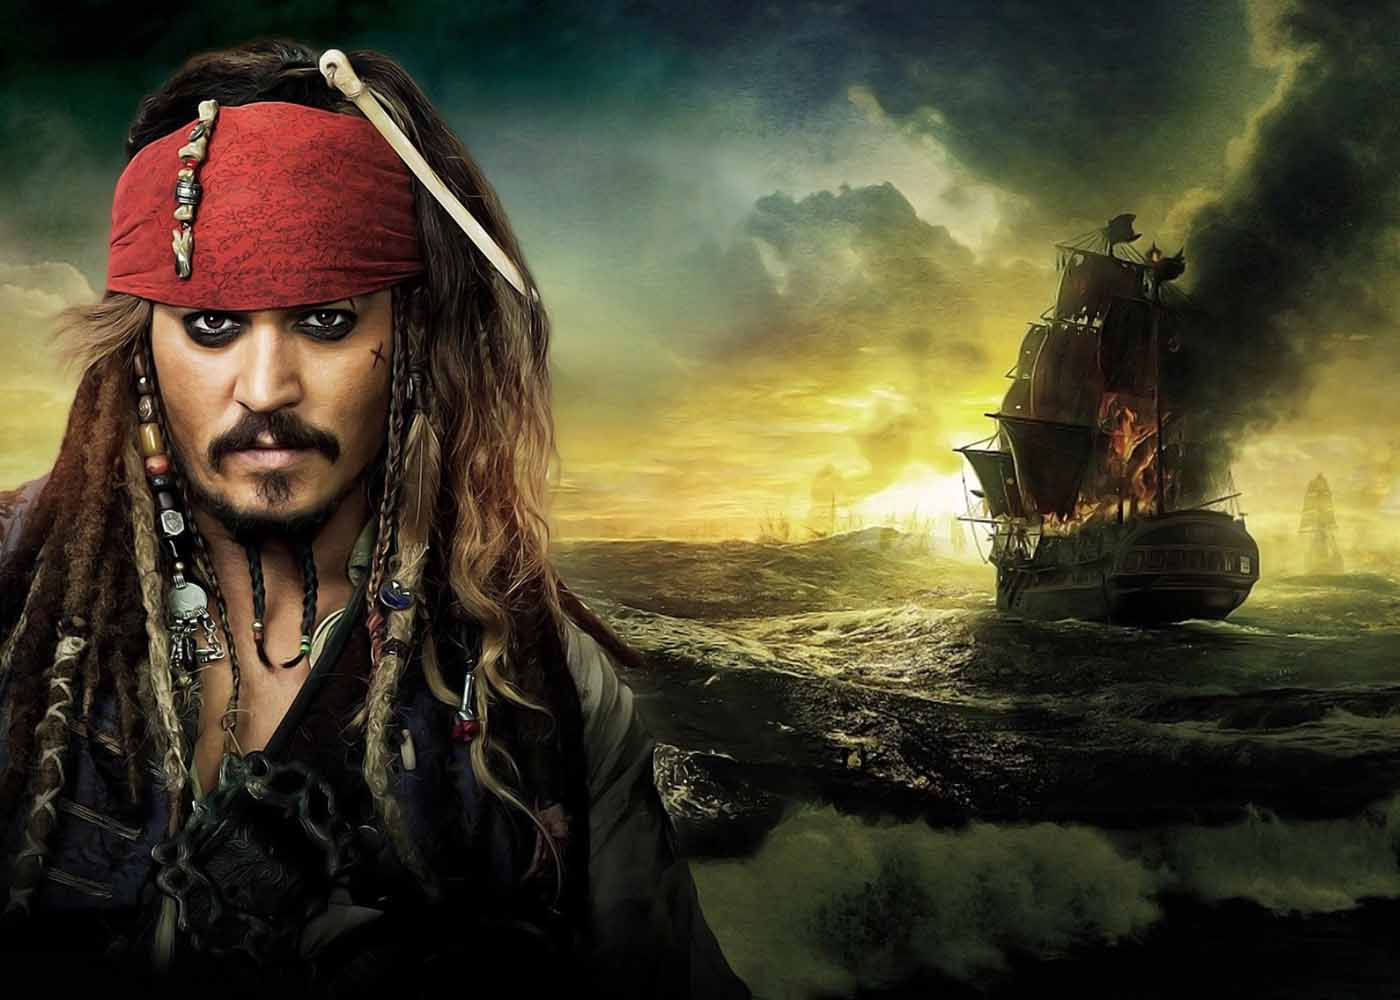 Johnny Depp's Role in Pirates of the Caribbean 6 Still Unclear